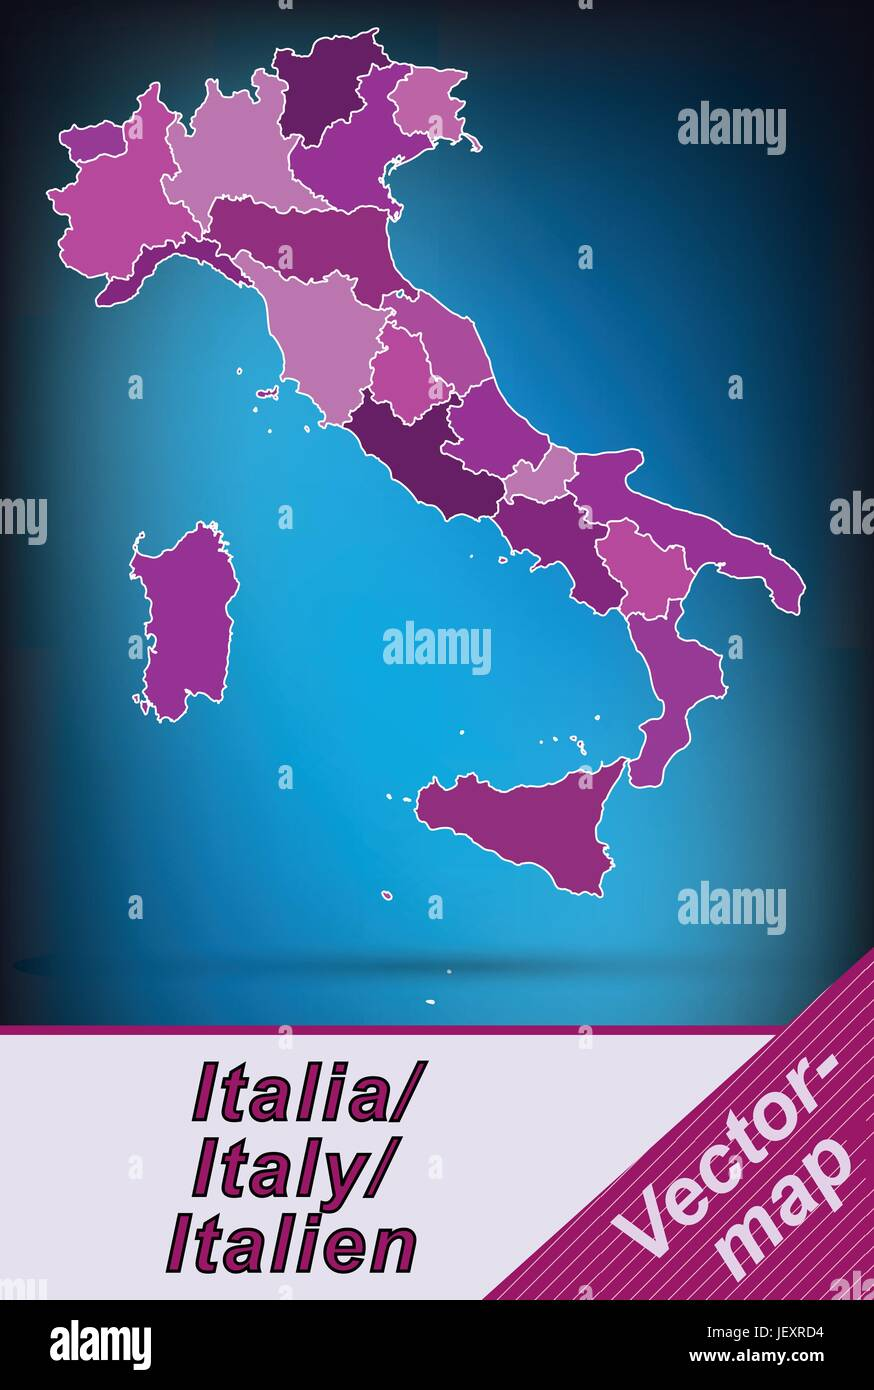 border map of italy with borders in violet - Stock Vector